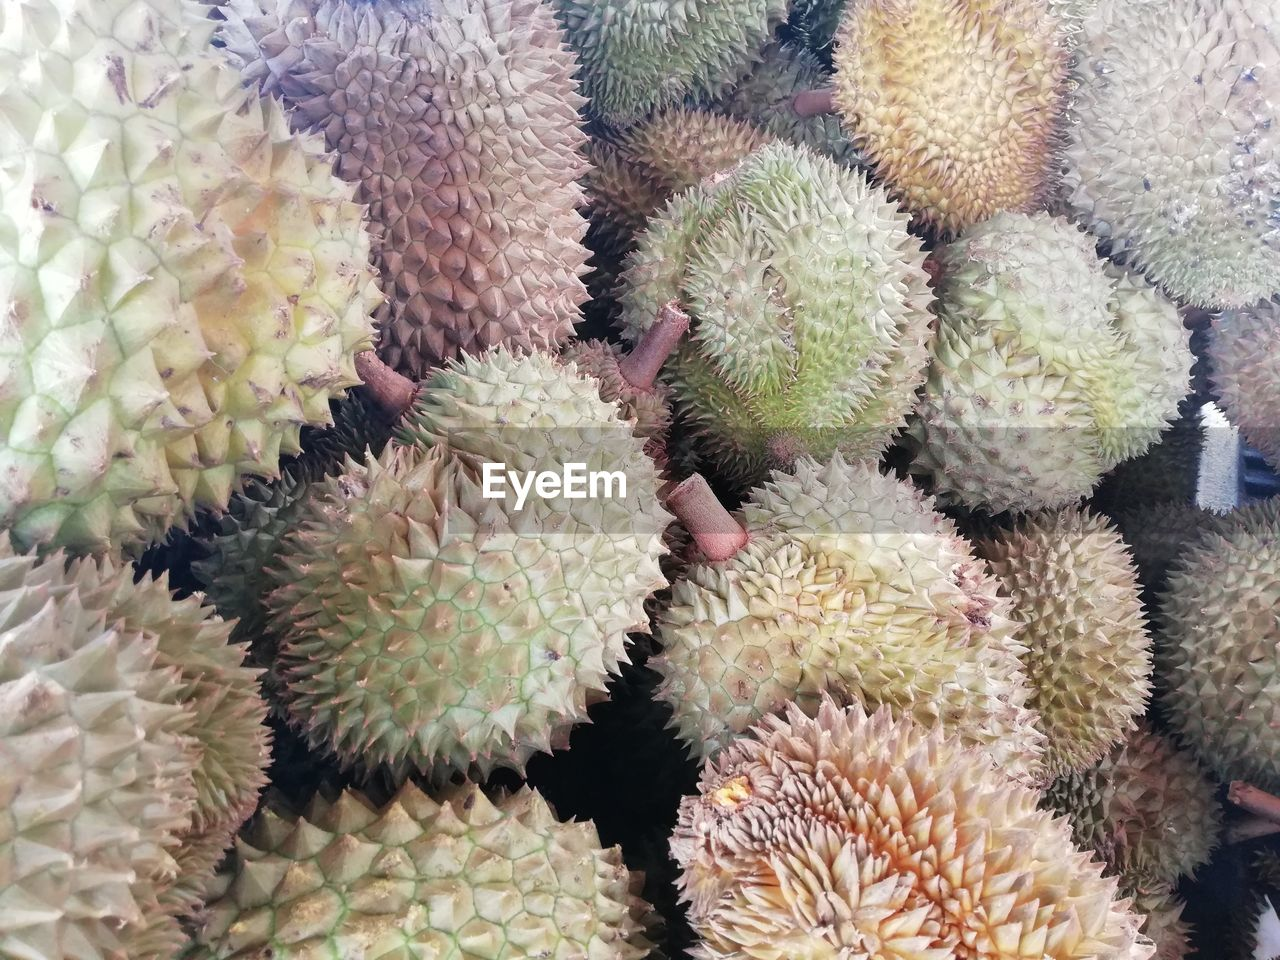 cactus, succulent plant, spiked, no people, growth, thorn, close-up, plant, green color, sharp, full frame, backgrounds, high angle view, day, freshness, large group of objects, barrel cactus, market, beauty in nature, abundance, retail display, spiky